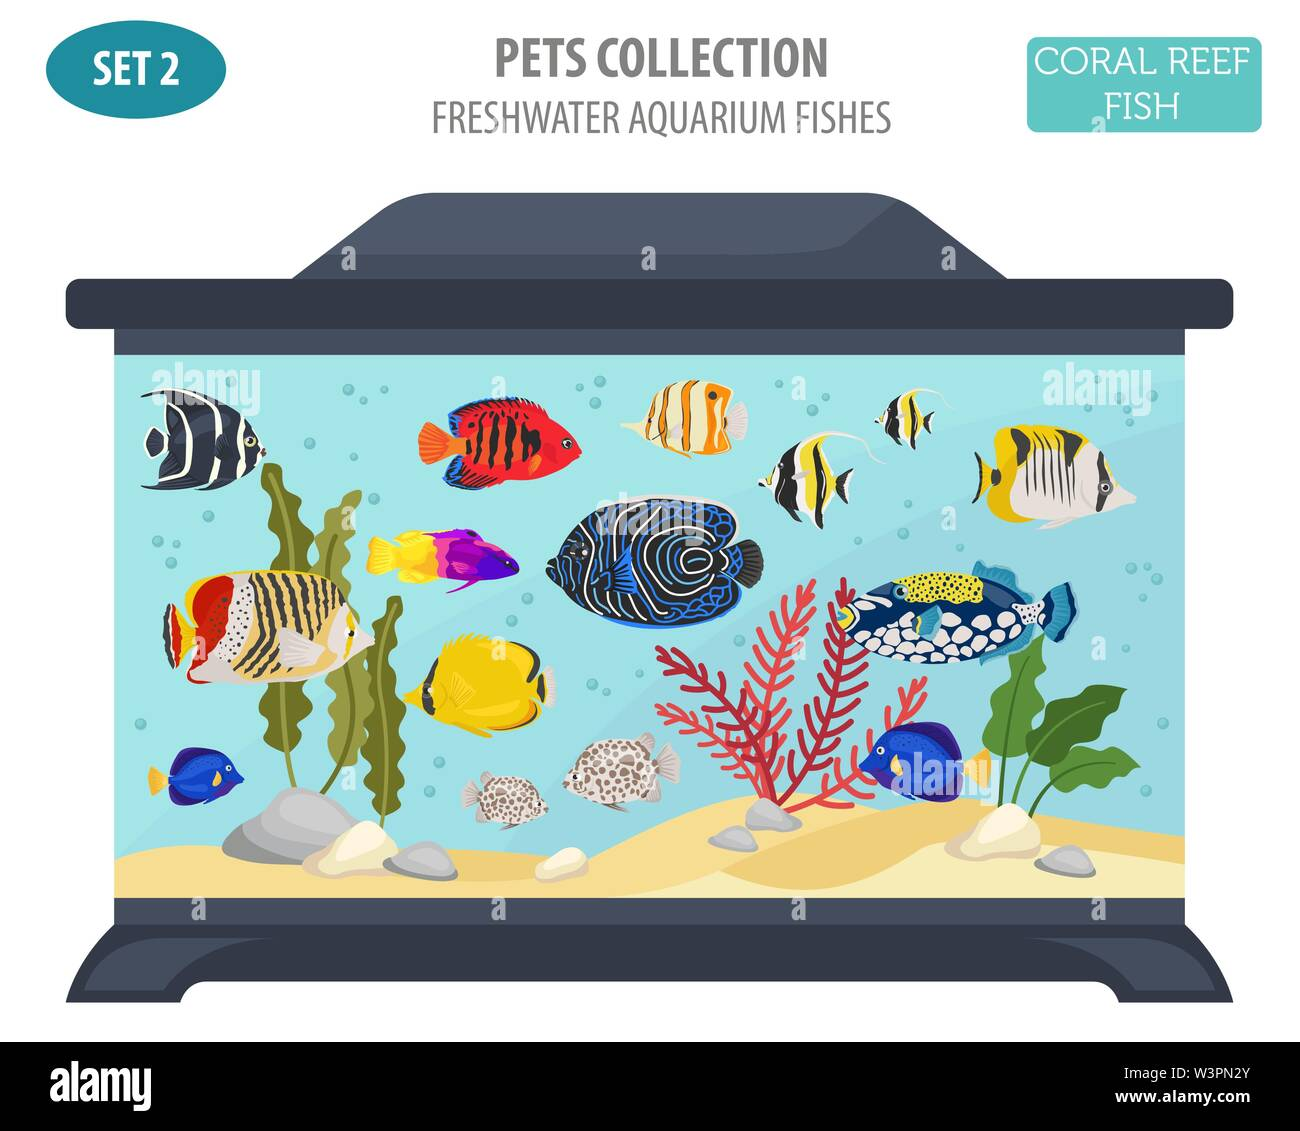 Freshwater aquarium fish breeds icon set flat style isolated on white. Coral reef. Create own infographic about pet. Vector illustration - Stock Image